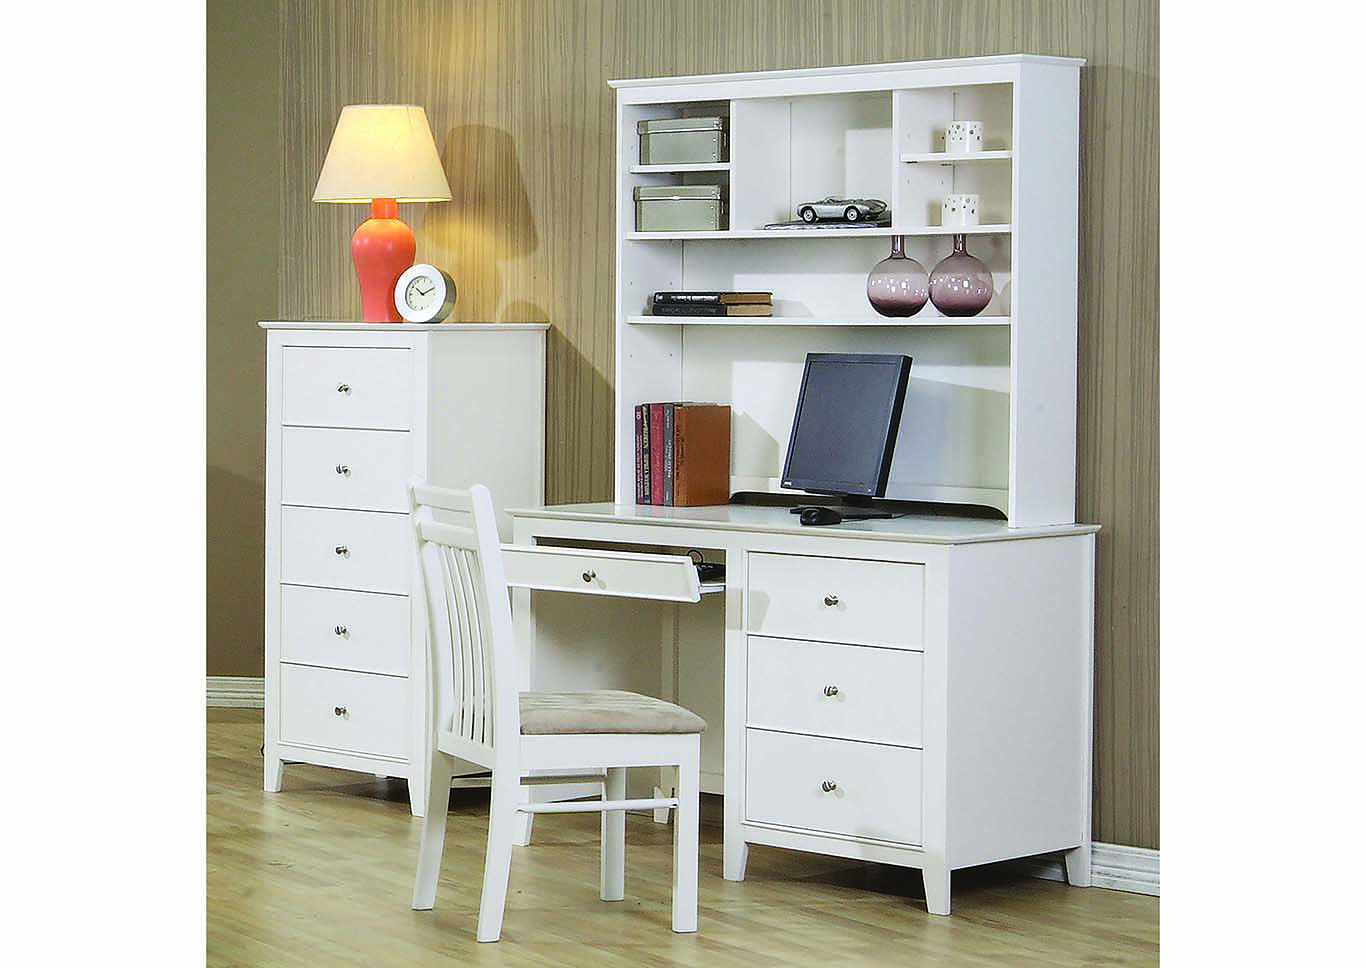 Selena White Desk & Hutch,ABF Coaster Furniture